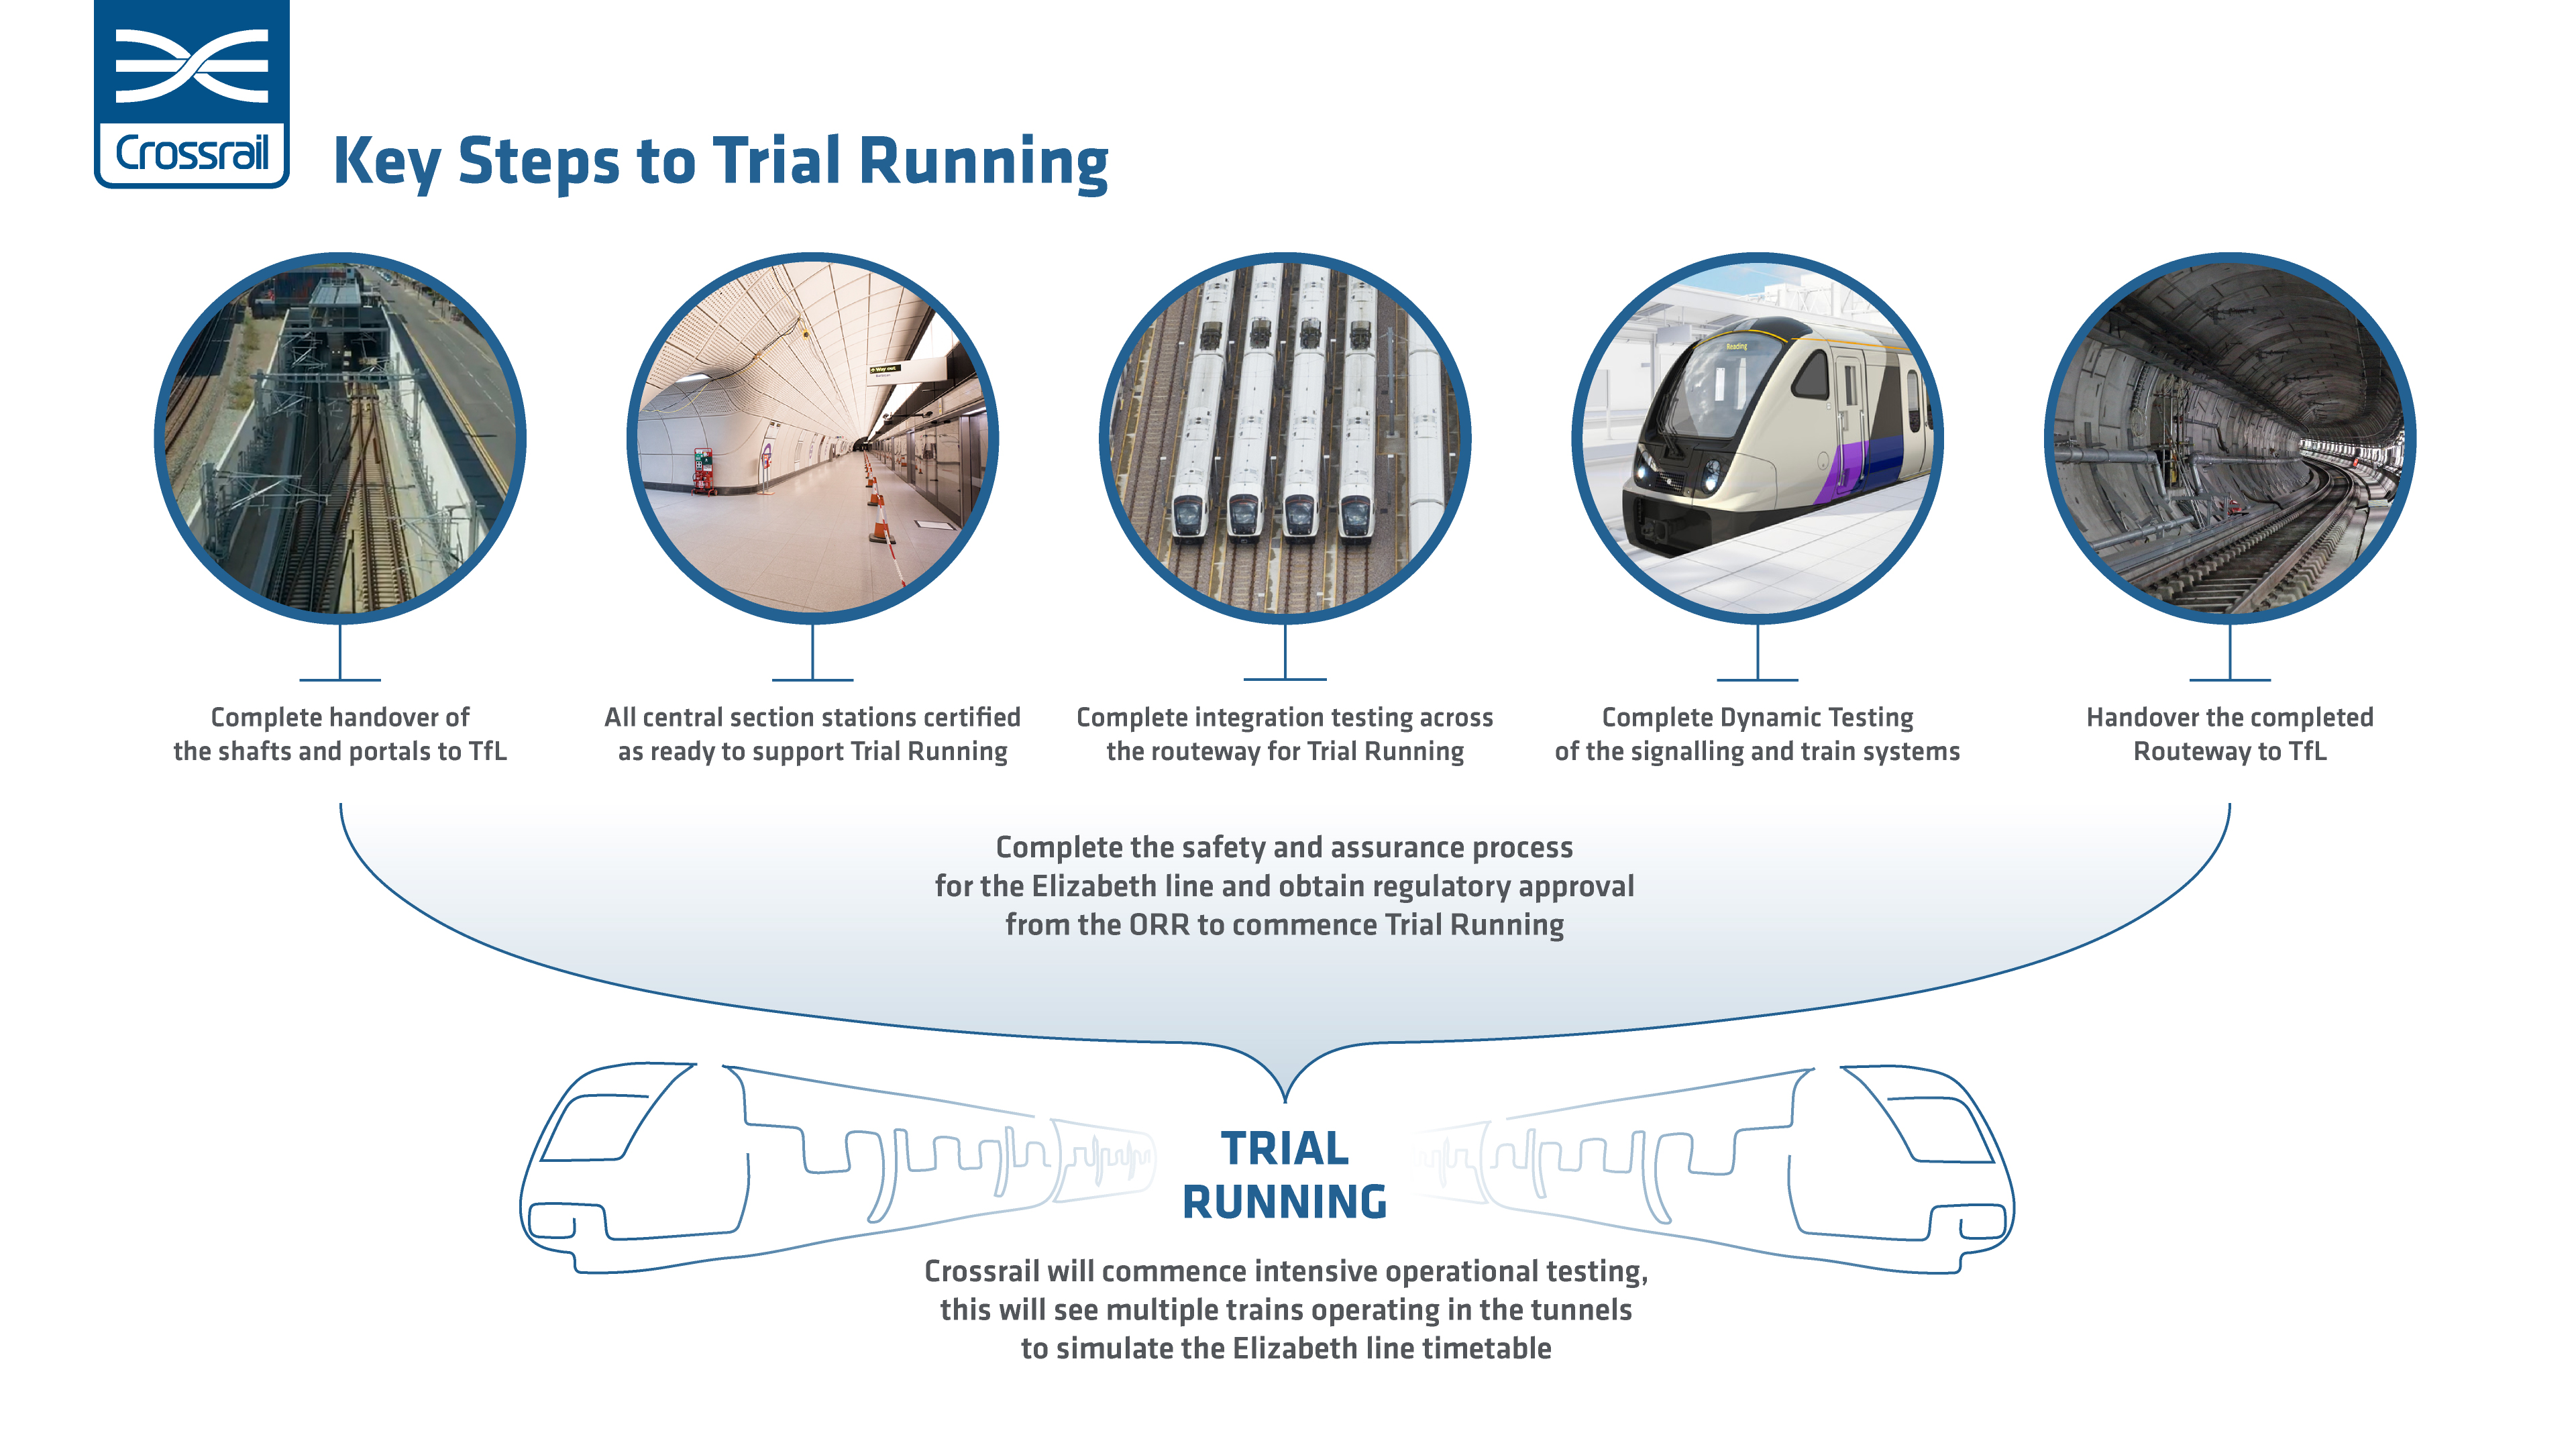 CRL Key Steps to Trial Running